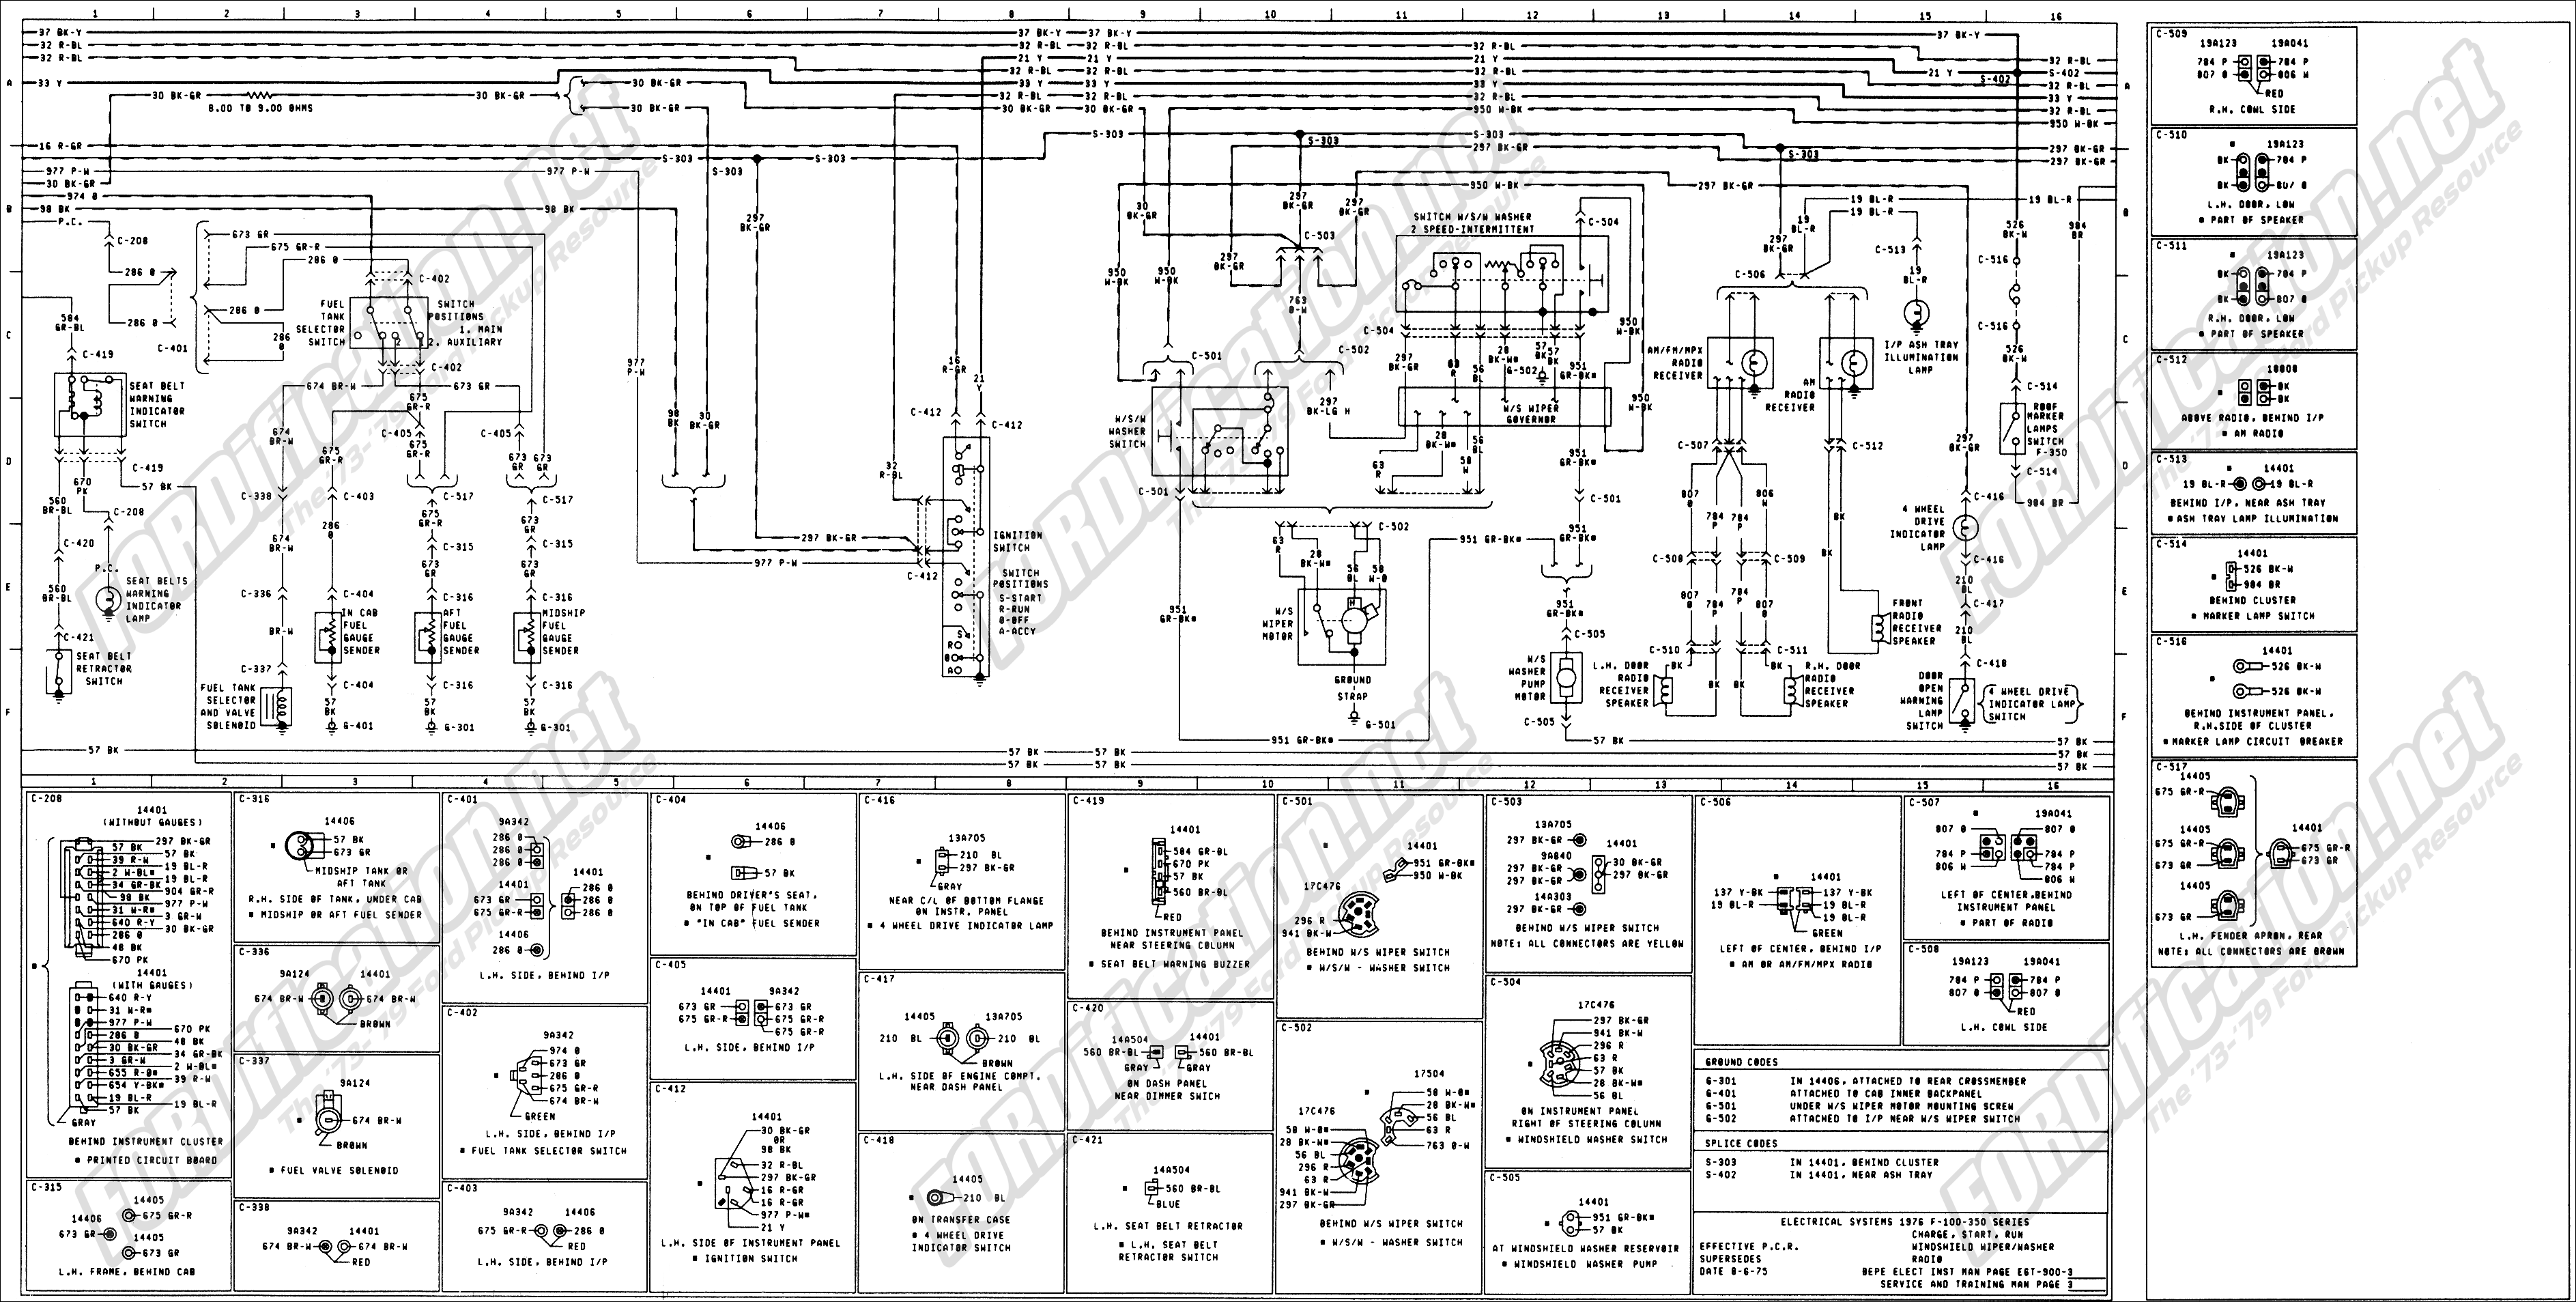 wiring_76master_3of9 1973 1979 ford truck wiring diagrams & schematics fordification net 2011 ford focus wiring diagram at metegol.co